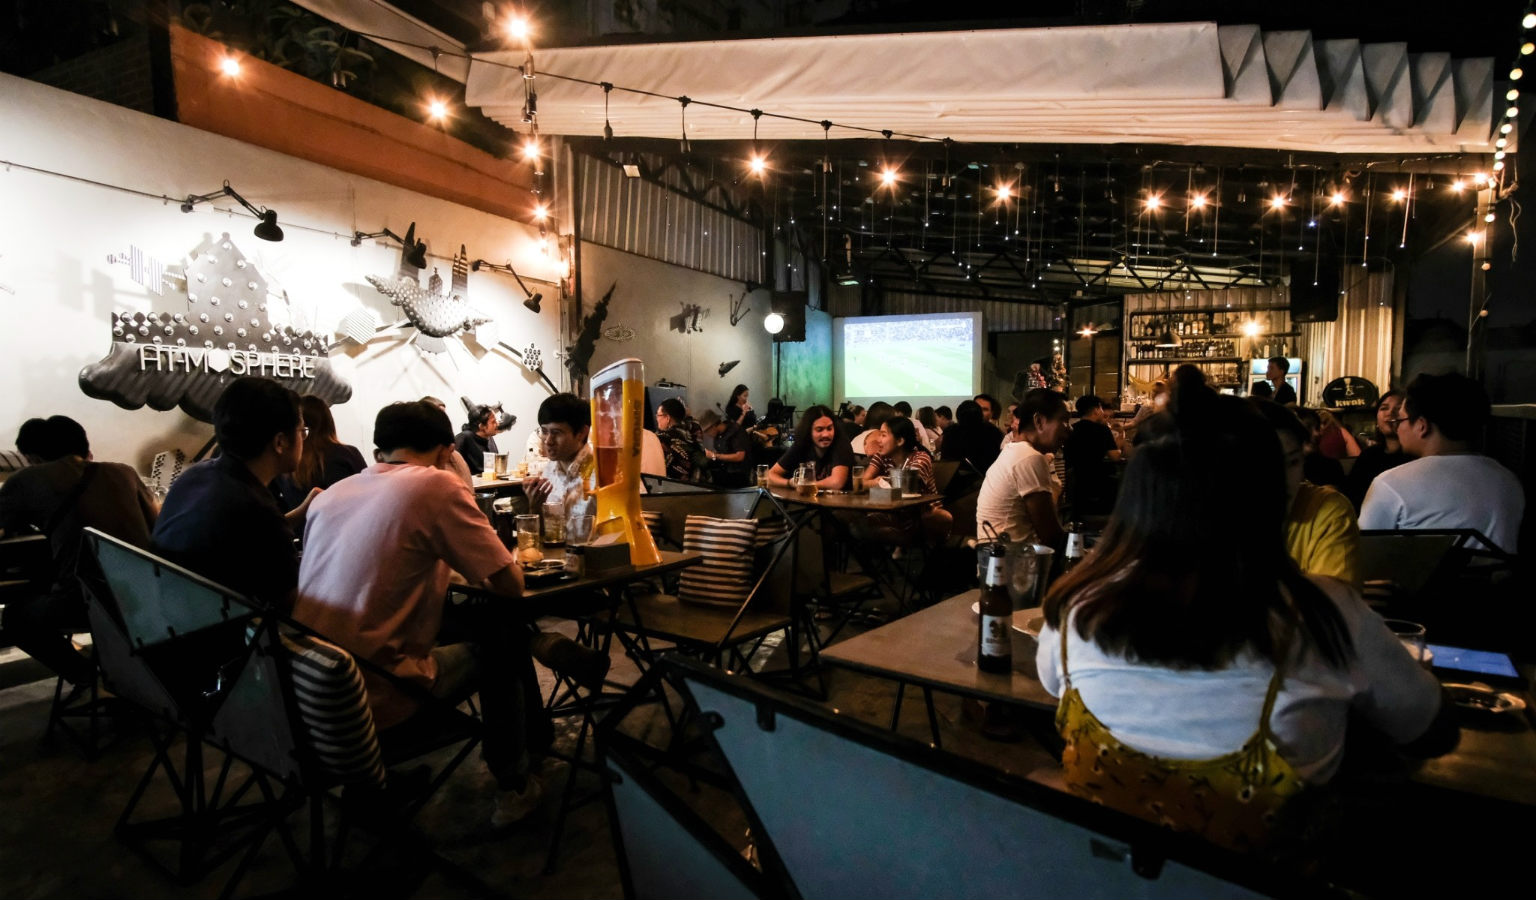 Atmosphere image of At-mosphere rooftop cafe in Bangkok, Thailand